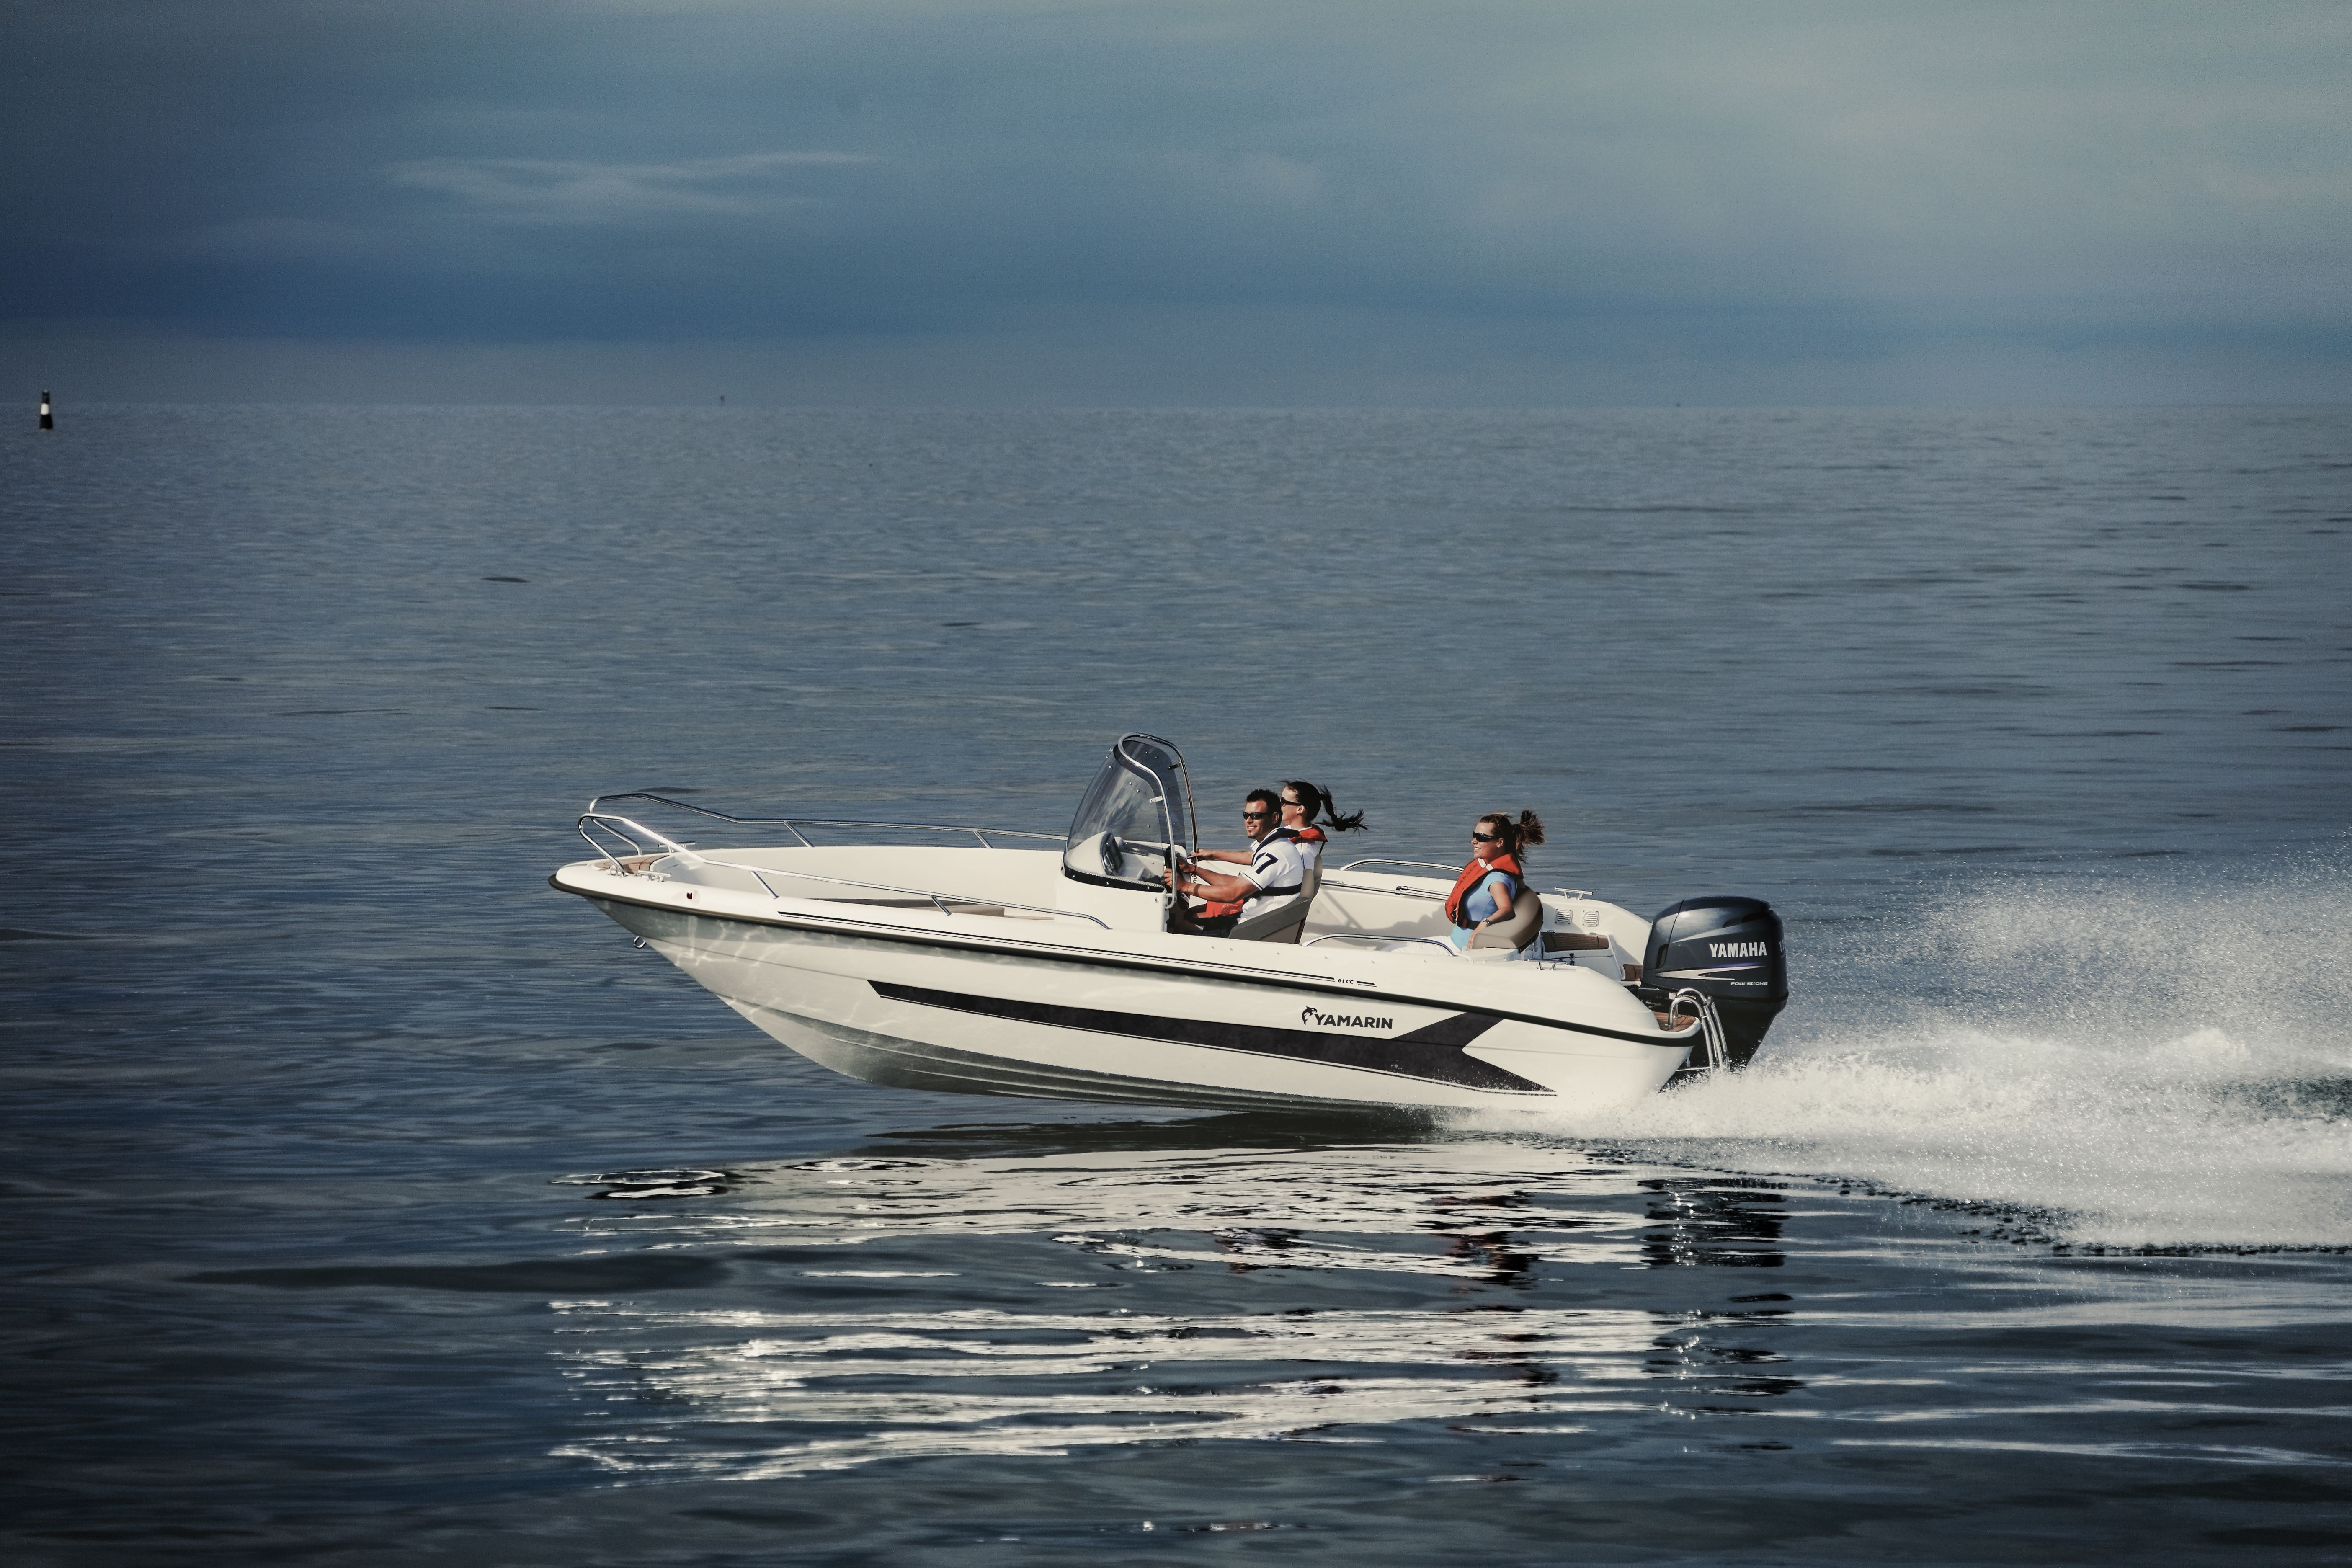 Yamarin 61 CC will be displayed at the Southampton Boat Show